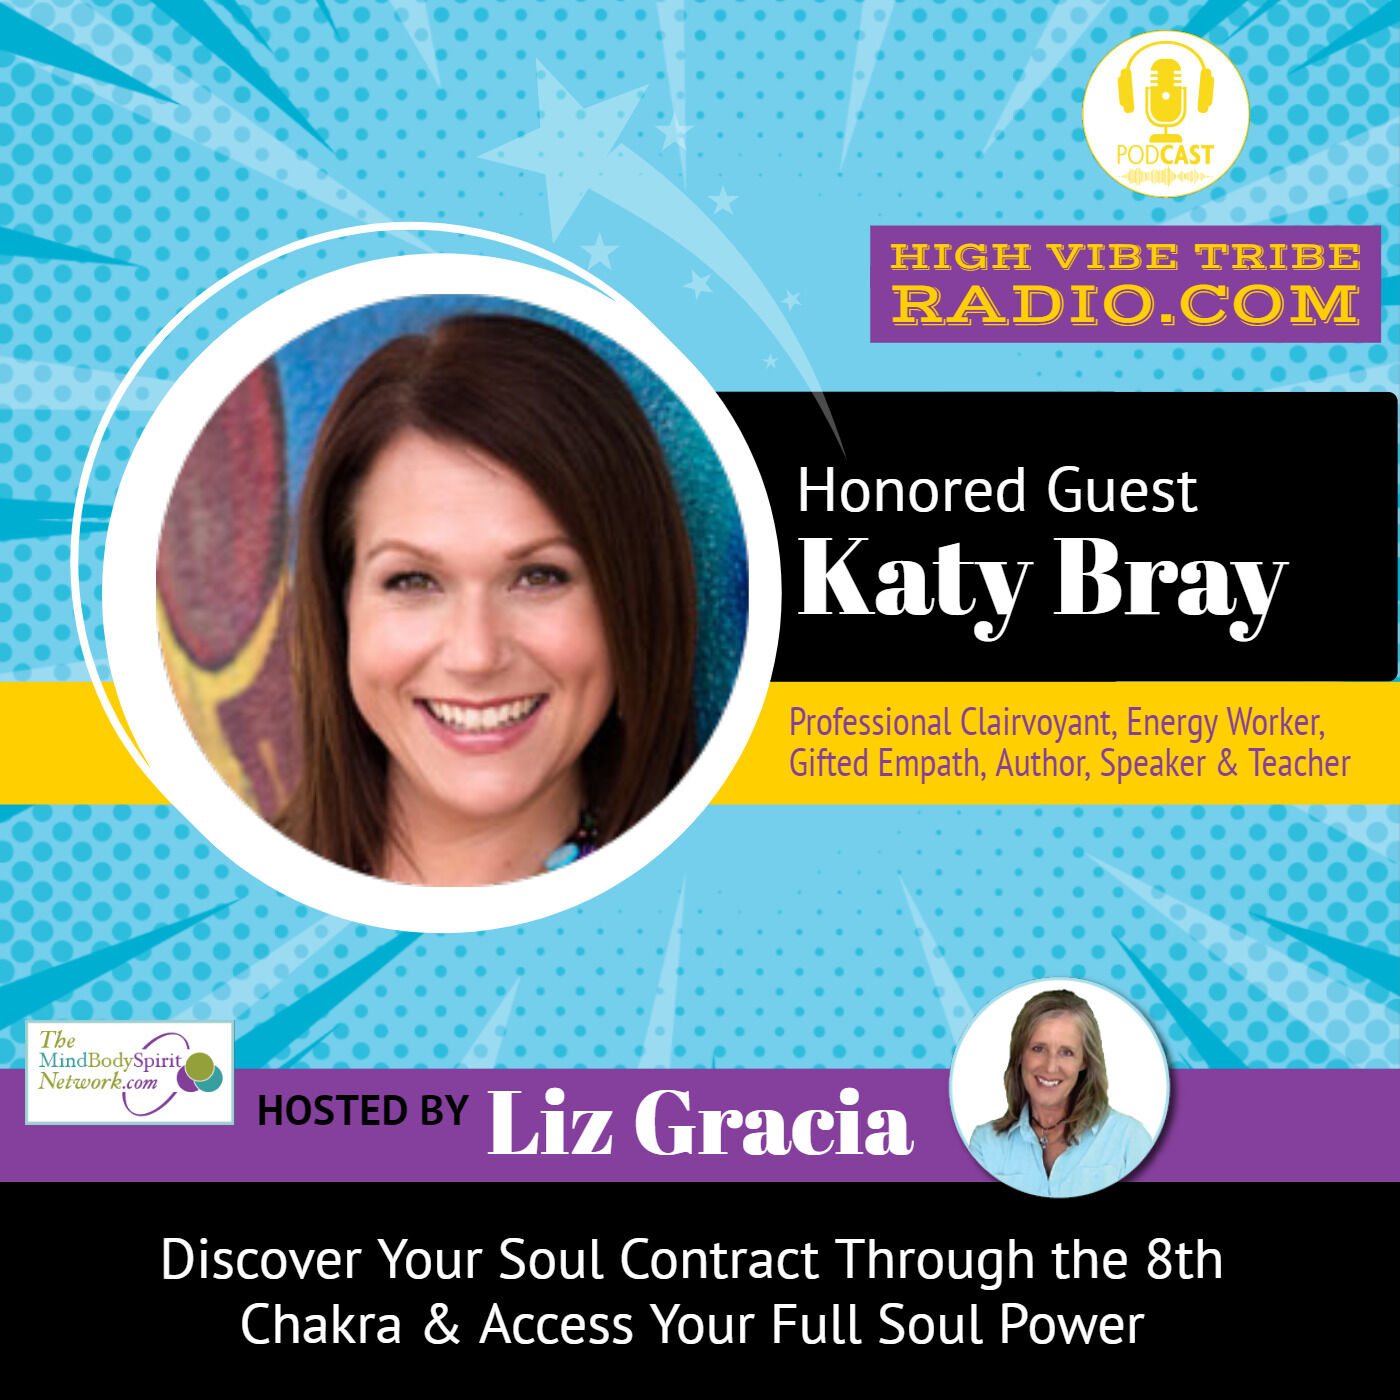 Discover Your Soul Contracts Through the 8th Chakra Interview with Katy Bray